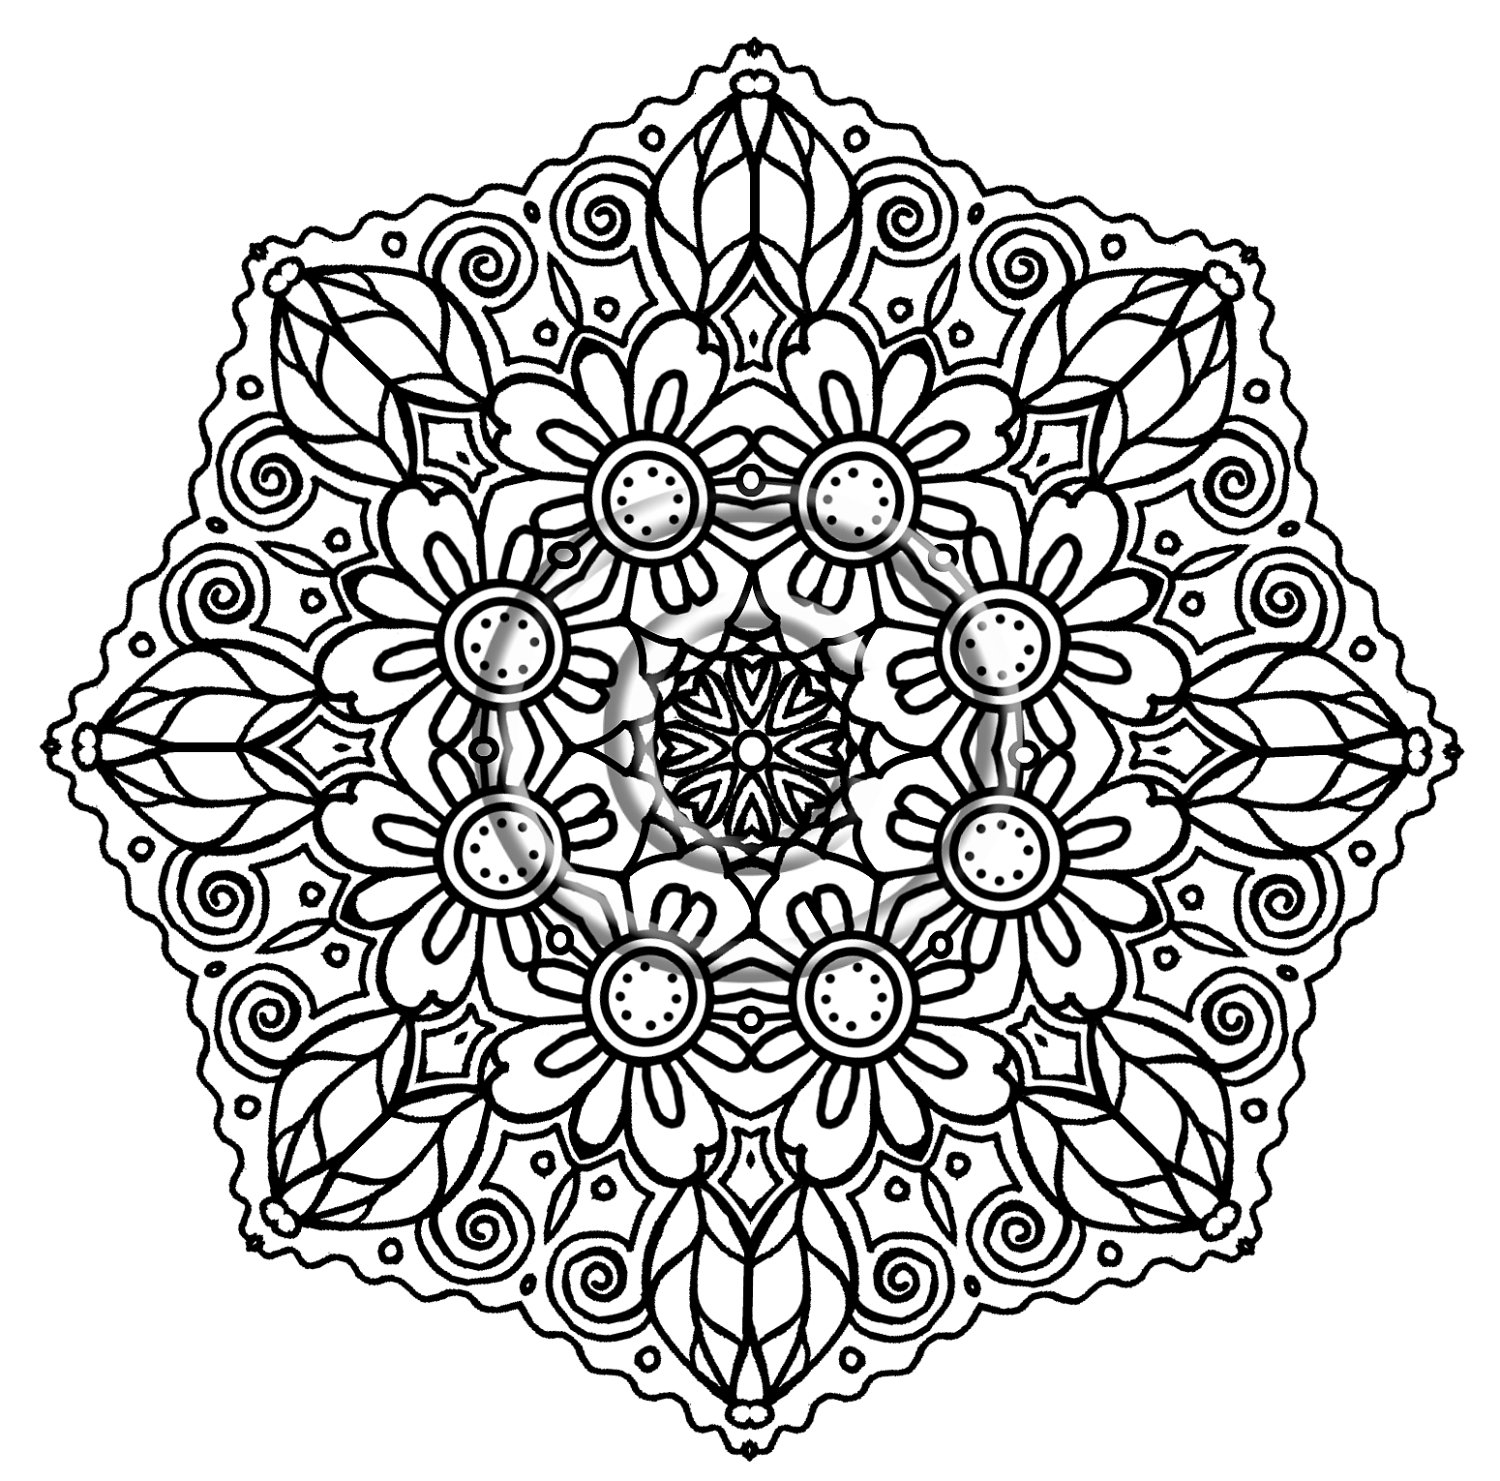 Intricate Mandala Coloring Pages Download Of Snowflake Coloring Pages for Adults Coloring Pages Inspiring Printable